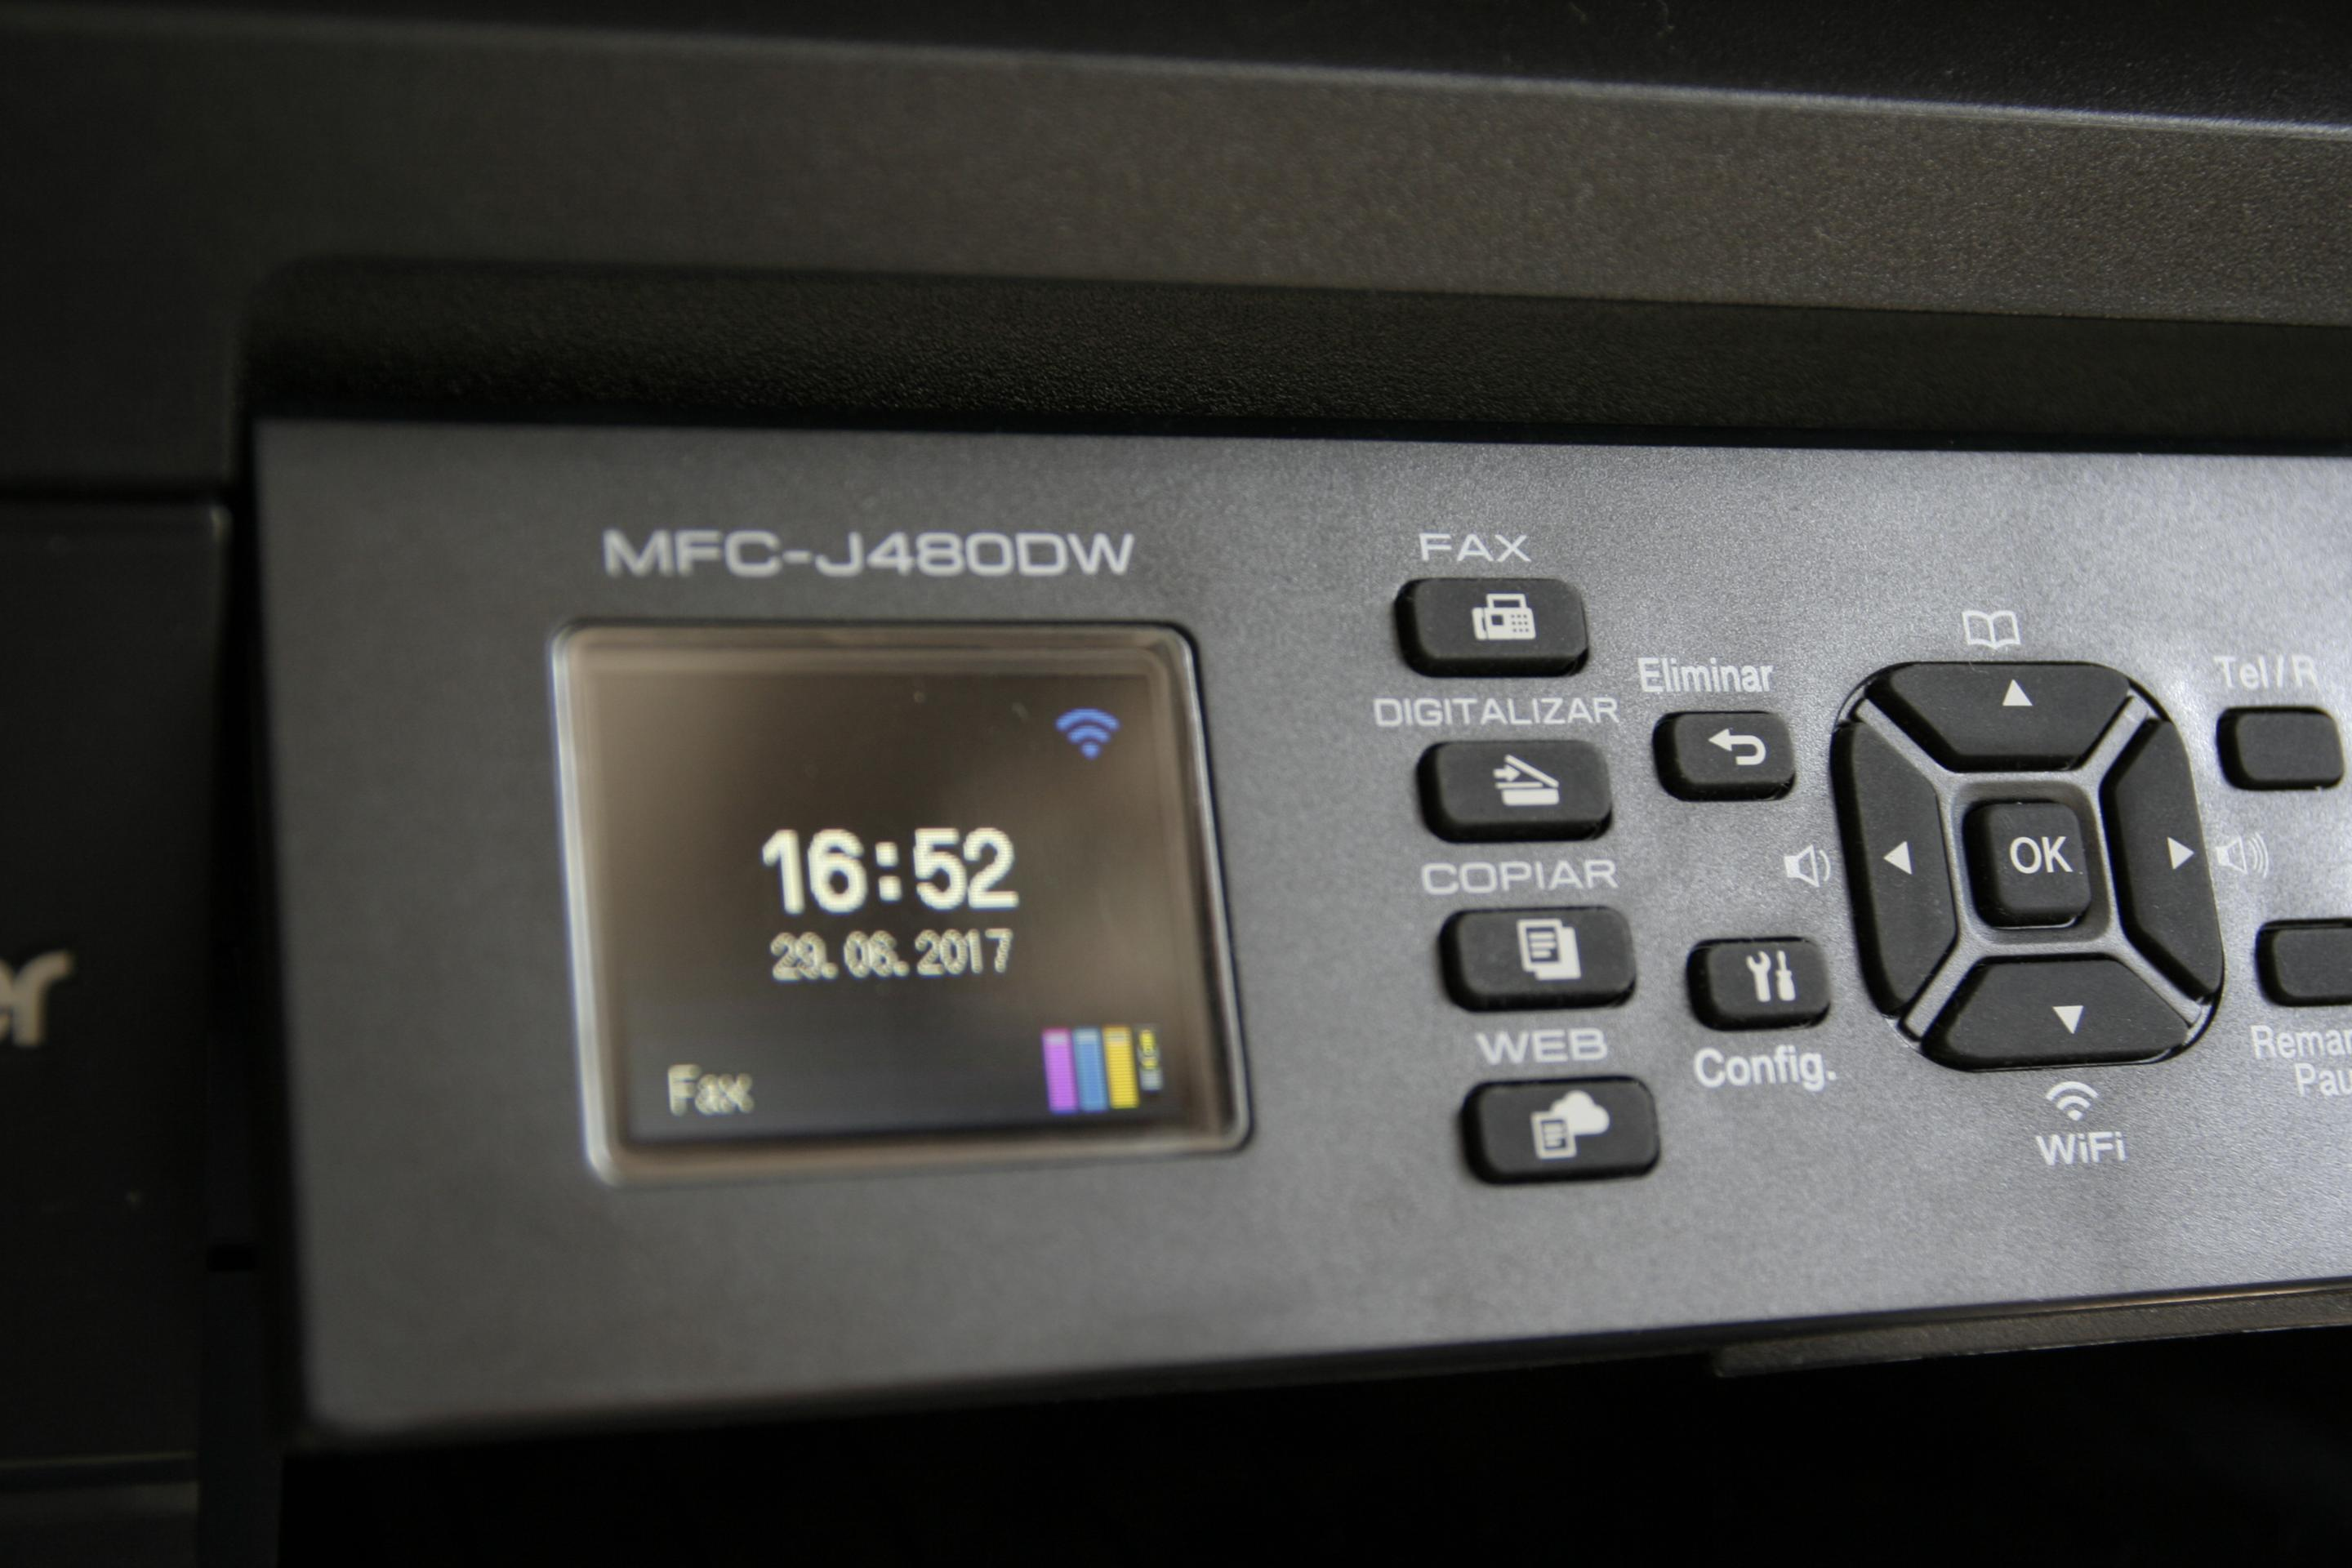 Panel de control de la impresora Brother MFC-J480DW